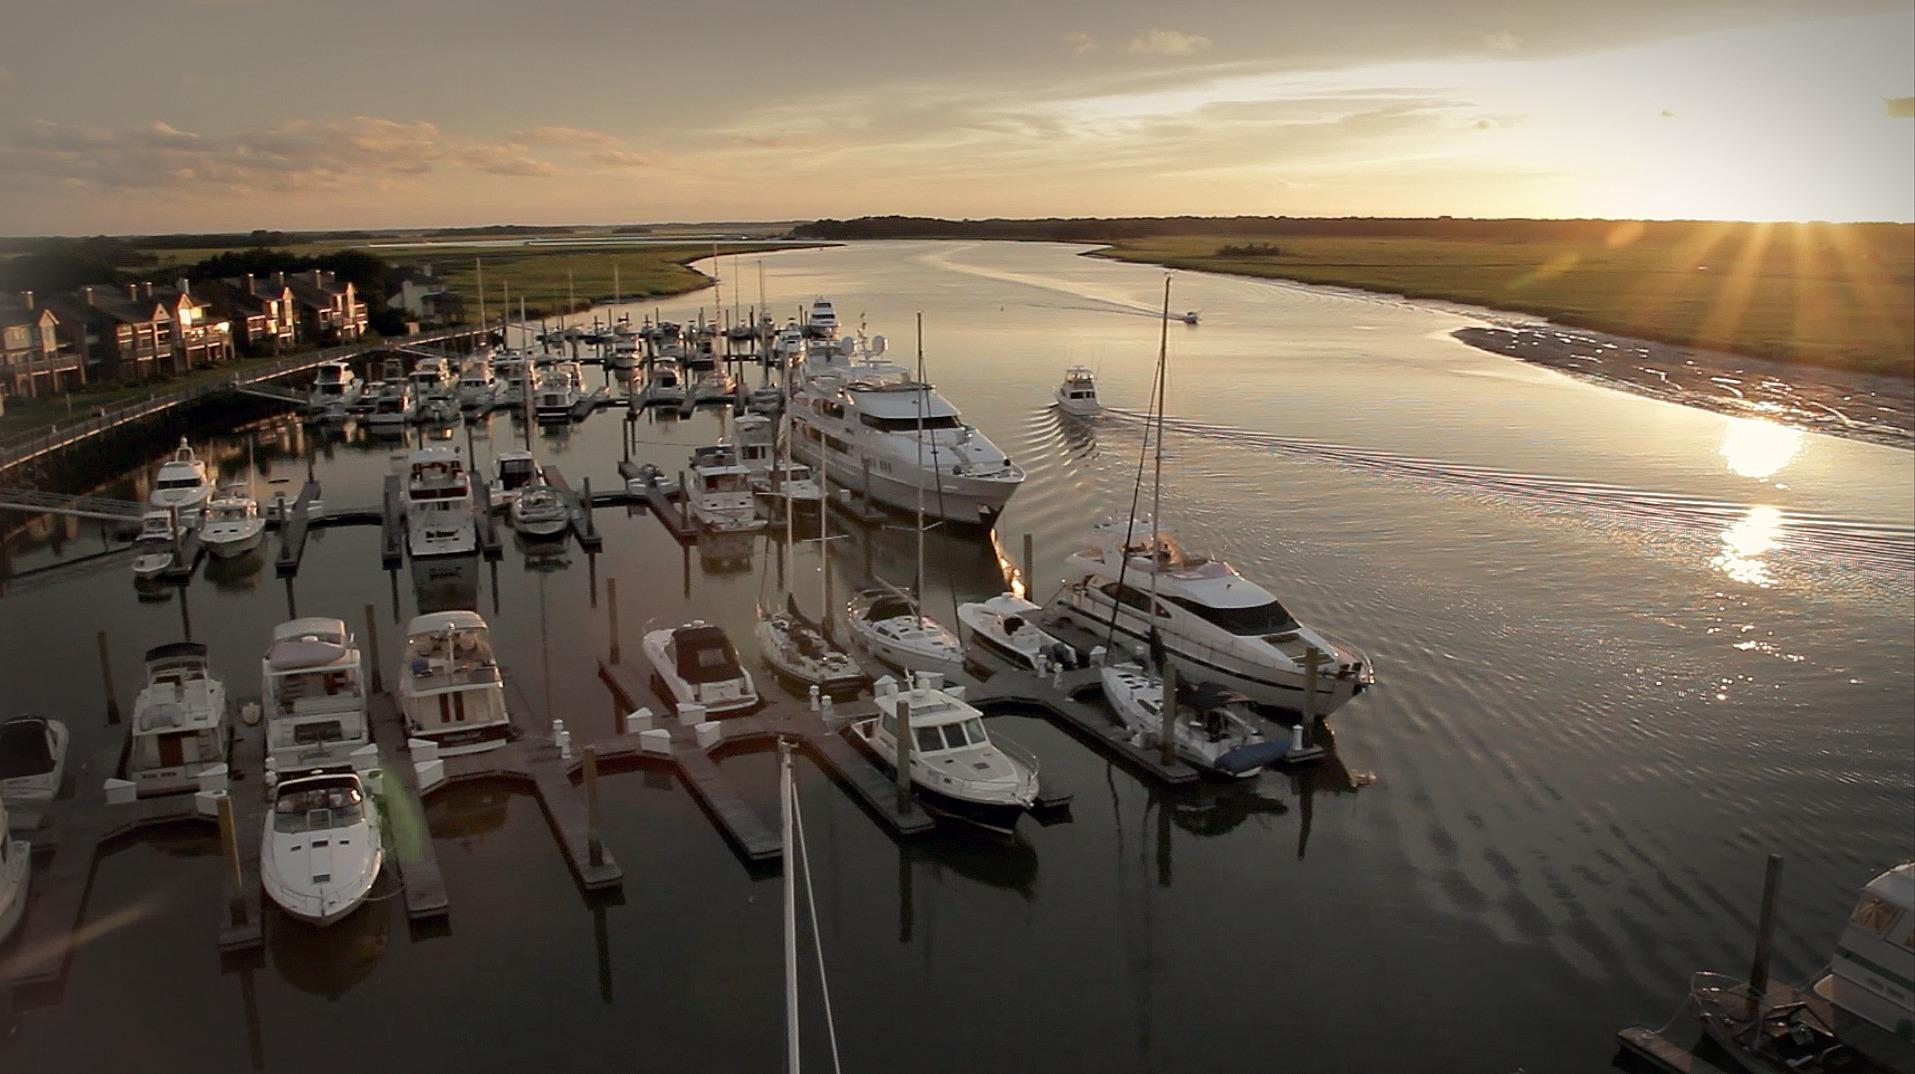 Seabrook Island Homes For Sale - 1880 Andell Bluff, Seabrook Island, SC - 3